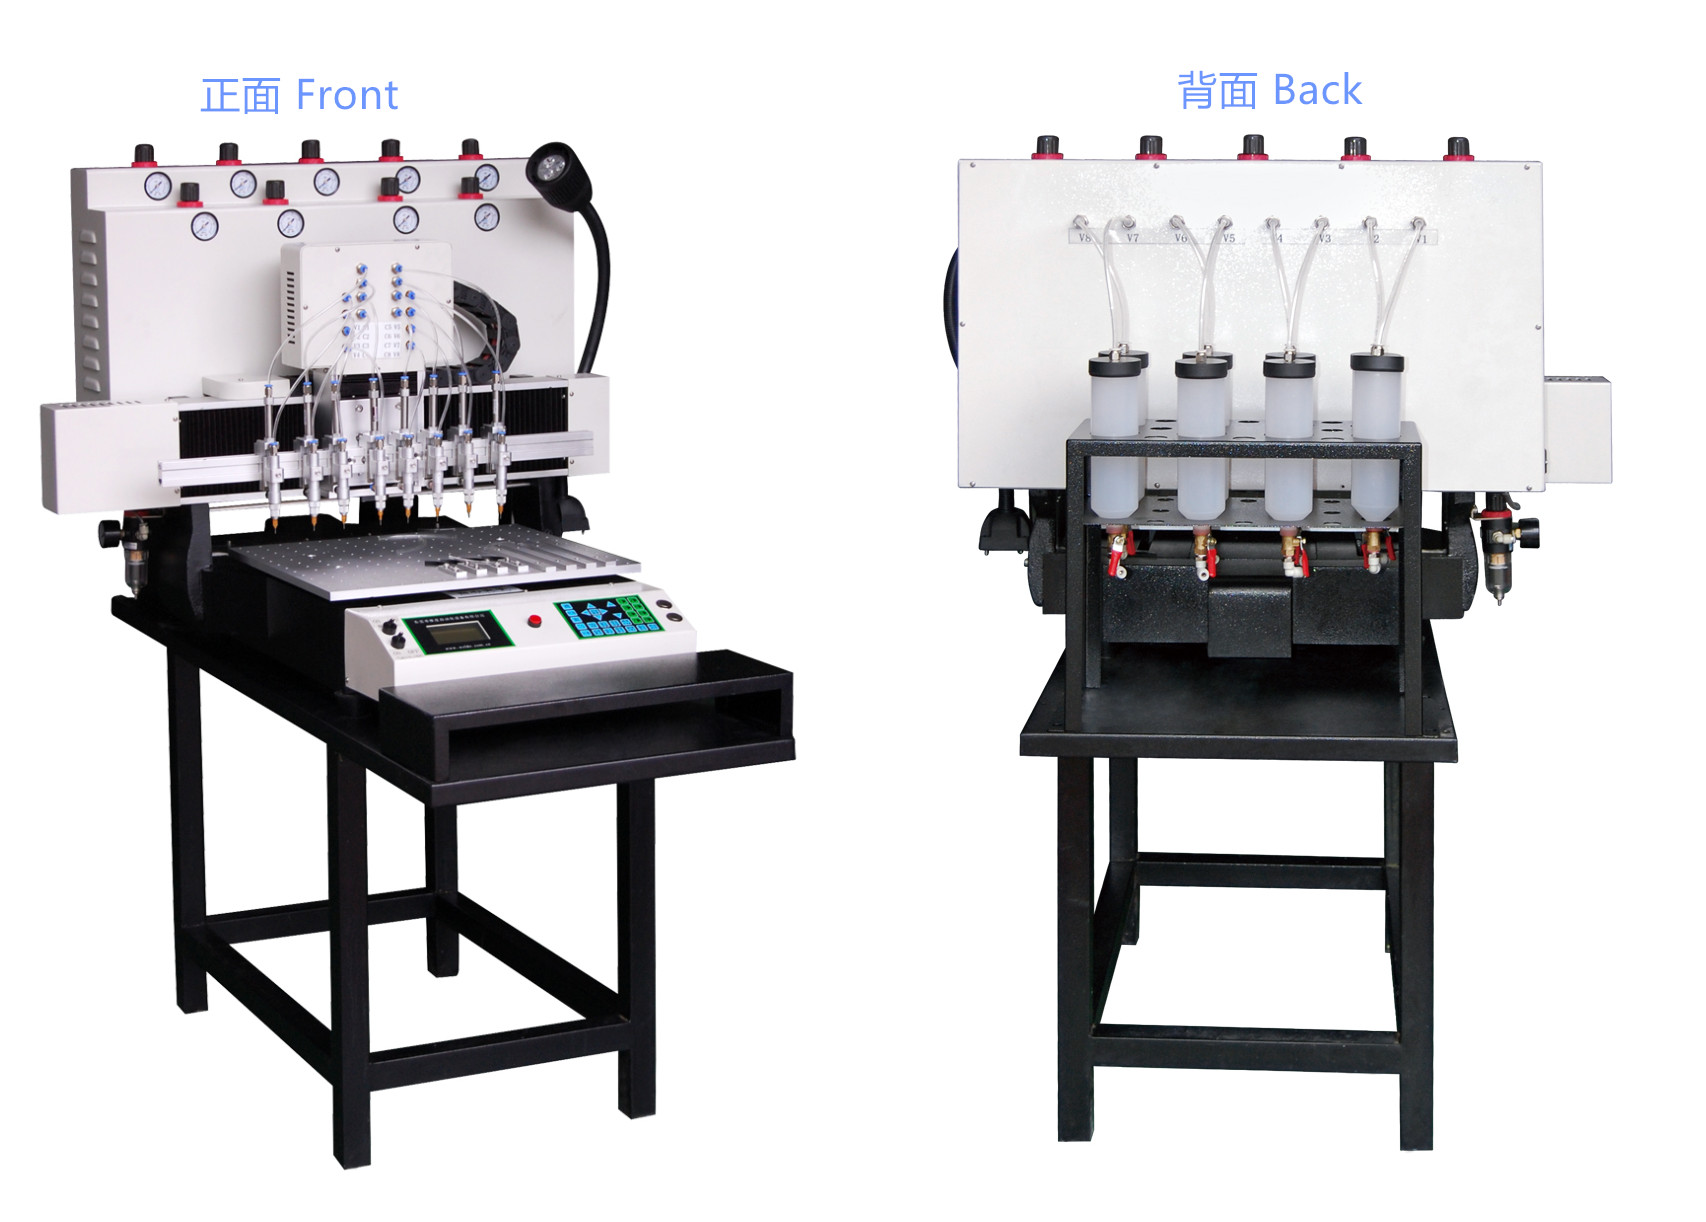 8 color PVC machine front and back